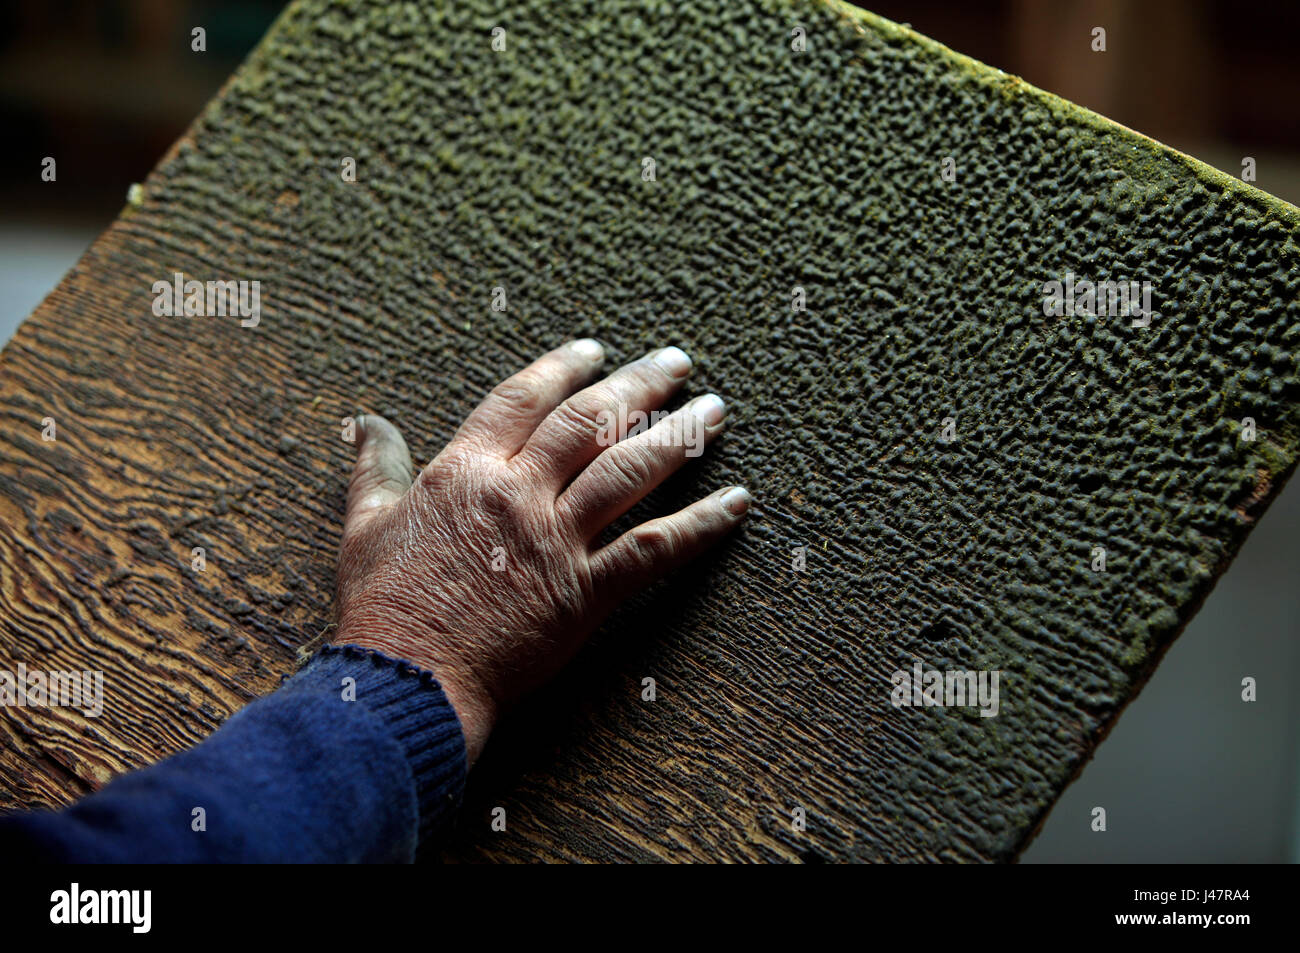 Picture by Tim Cuff - 20 October 2016 - A scraper in the hop kiln coated in resin at hop grower Peter Lines' - Stock Image